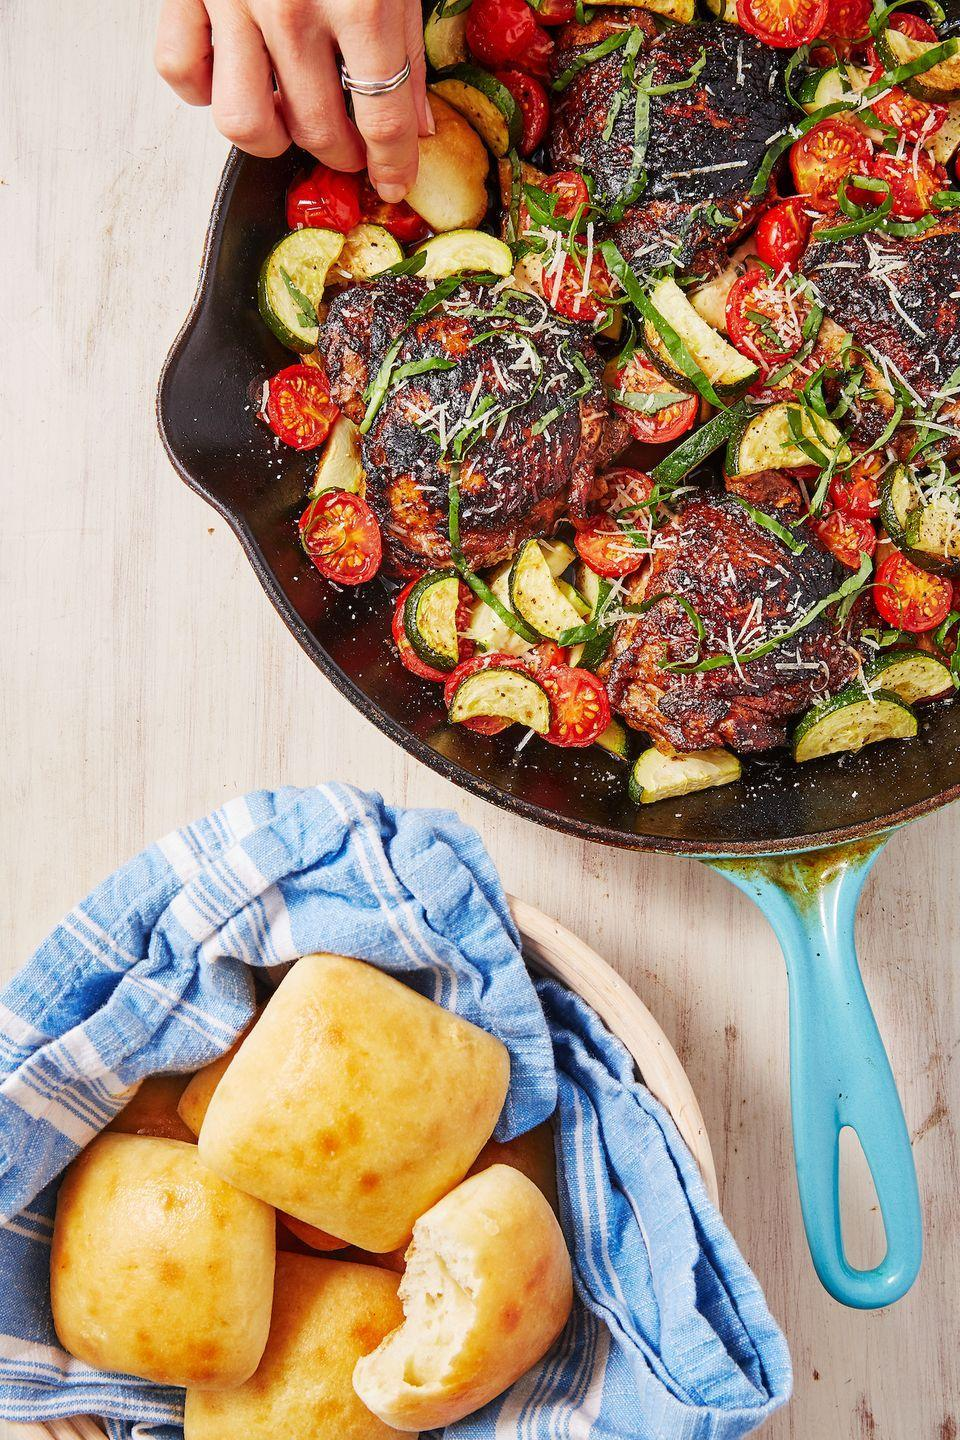 """<p>It all comes together in 30 minutes.</p><p>Get the recipe from <a href=""""https://www.delish.com/cooking/recipe-ideas/a22607407/balsamic-basil-chicken-recipe/"""" rel=""""nofollow noopener"""" target=""""_blank"""" data-ylk=""""slk:Delish"""" class=""""link rapid-noclick-resp"""">Delish</a>.</p>"""